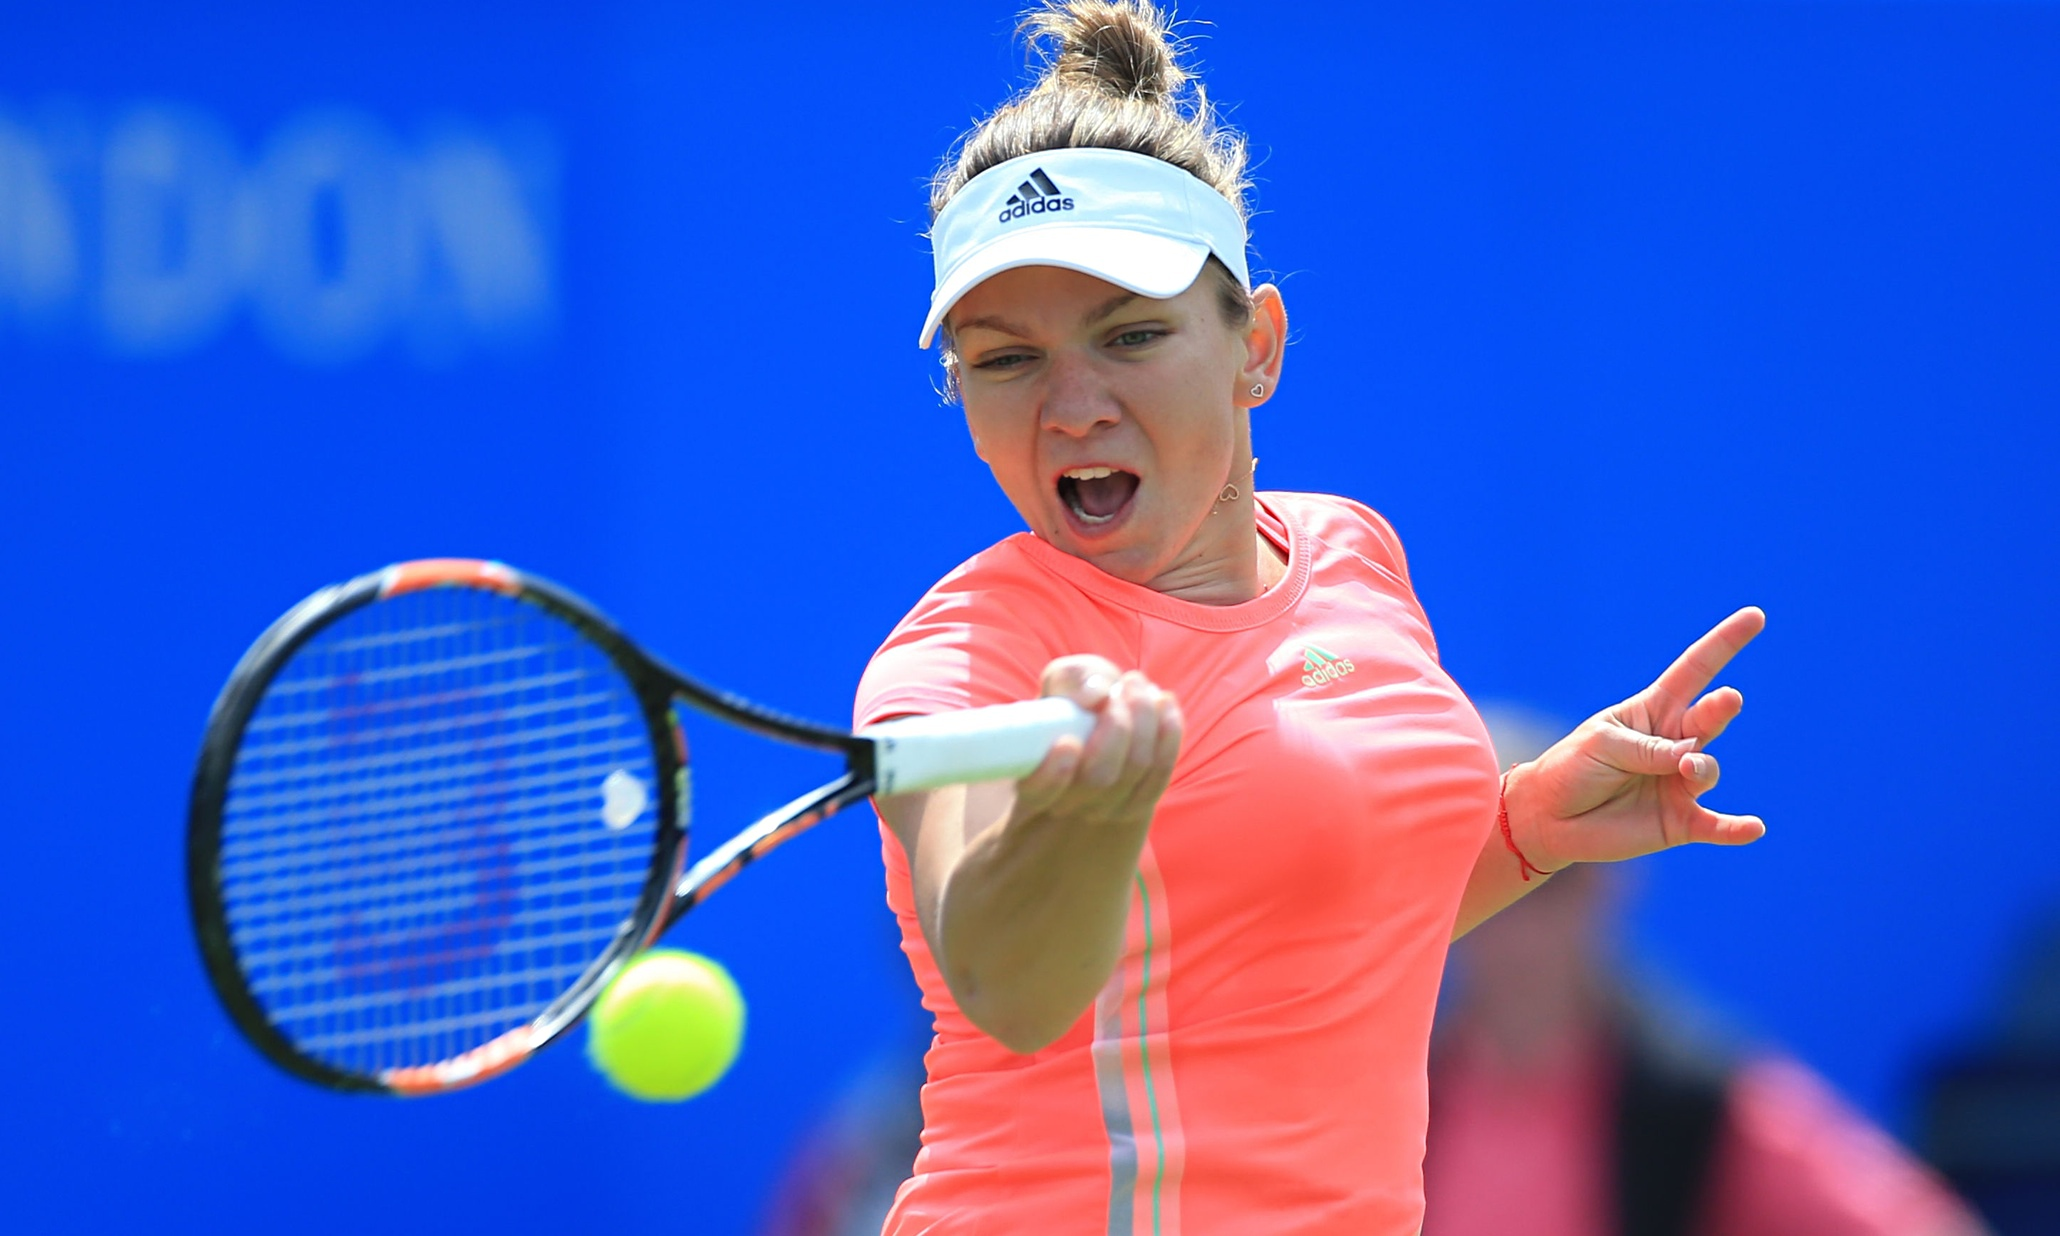 Simona Halep Advances As Top Seeds Recover Poise In Birmingham Blue Follows Departures Of Ana Ivanovic And Victoria Azarenka On Wednesdaysimona Led A Strong Day For The